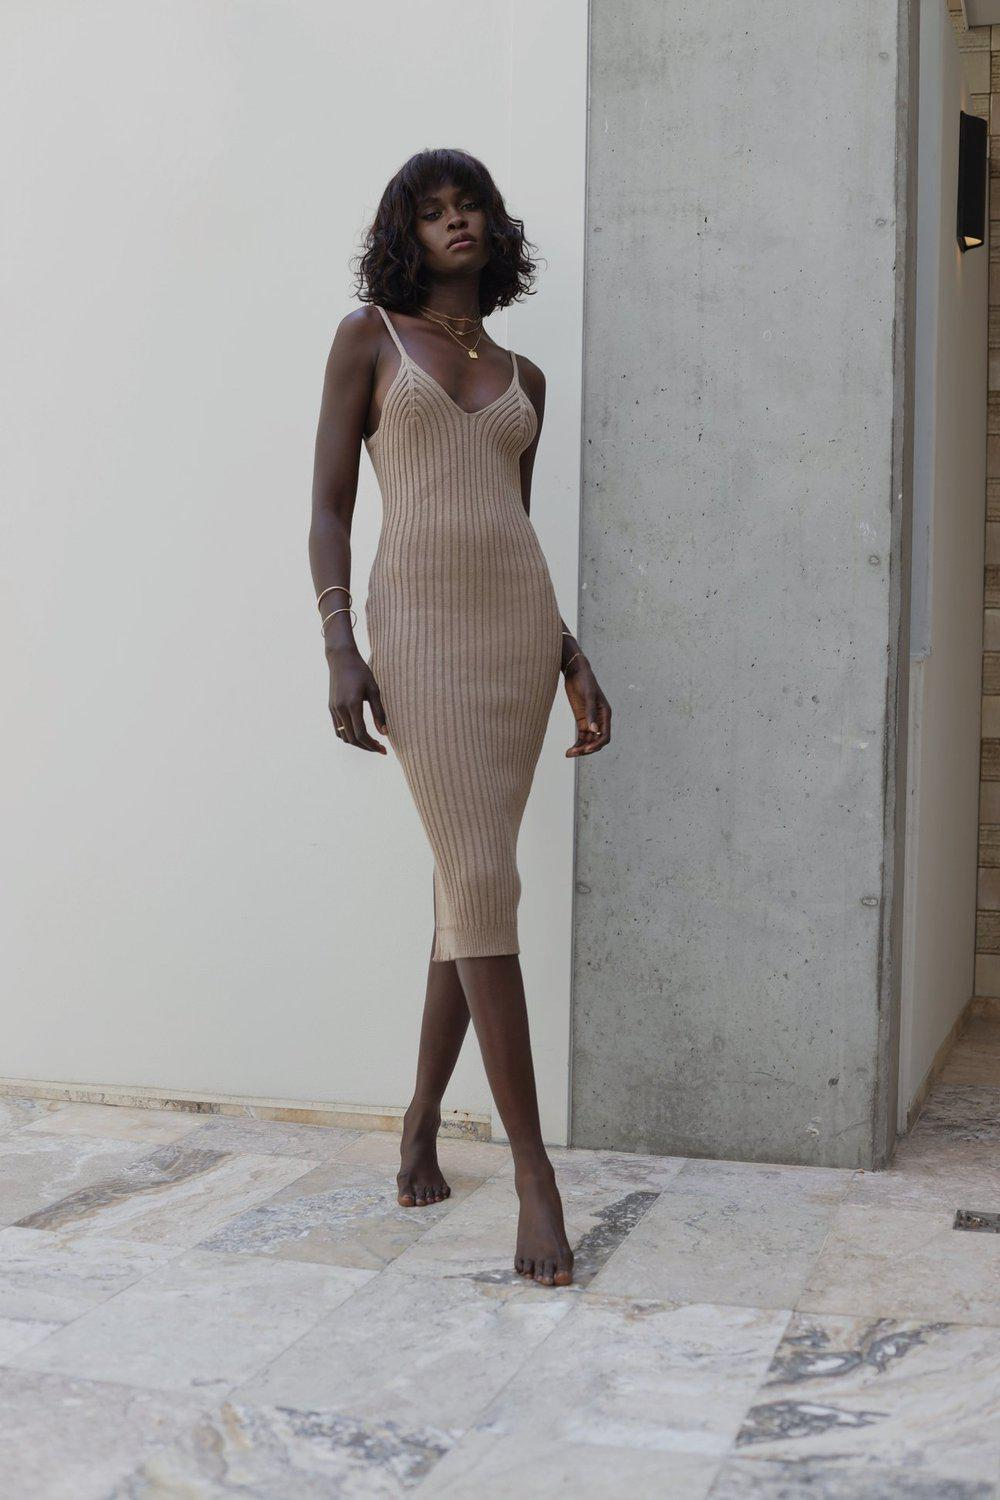 Sims Dress / Sand | Trois | Mad About The Boy